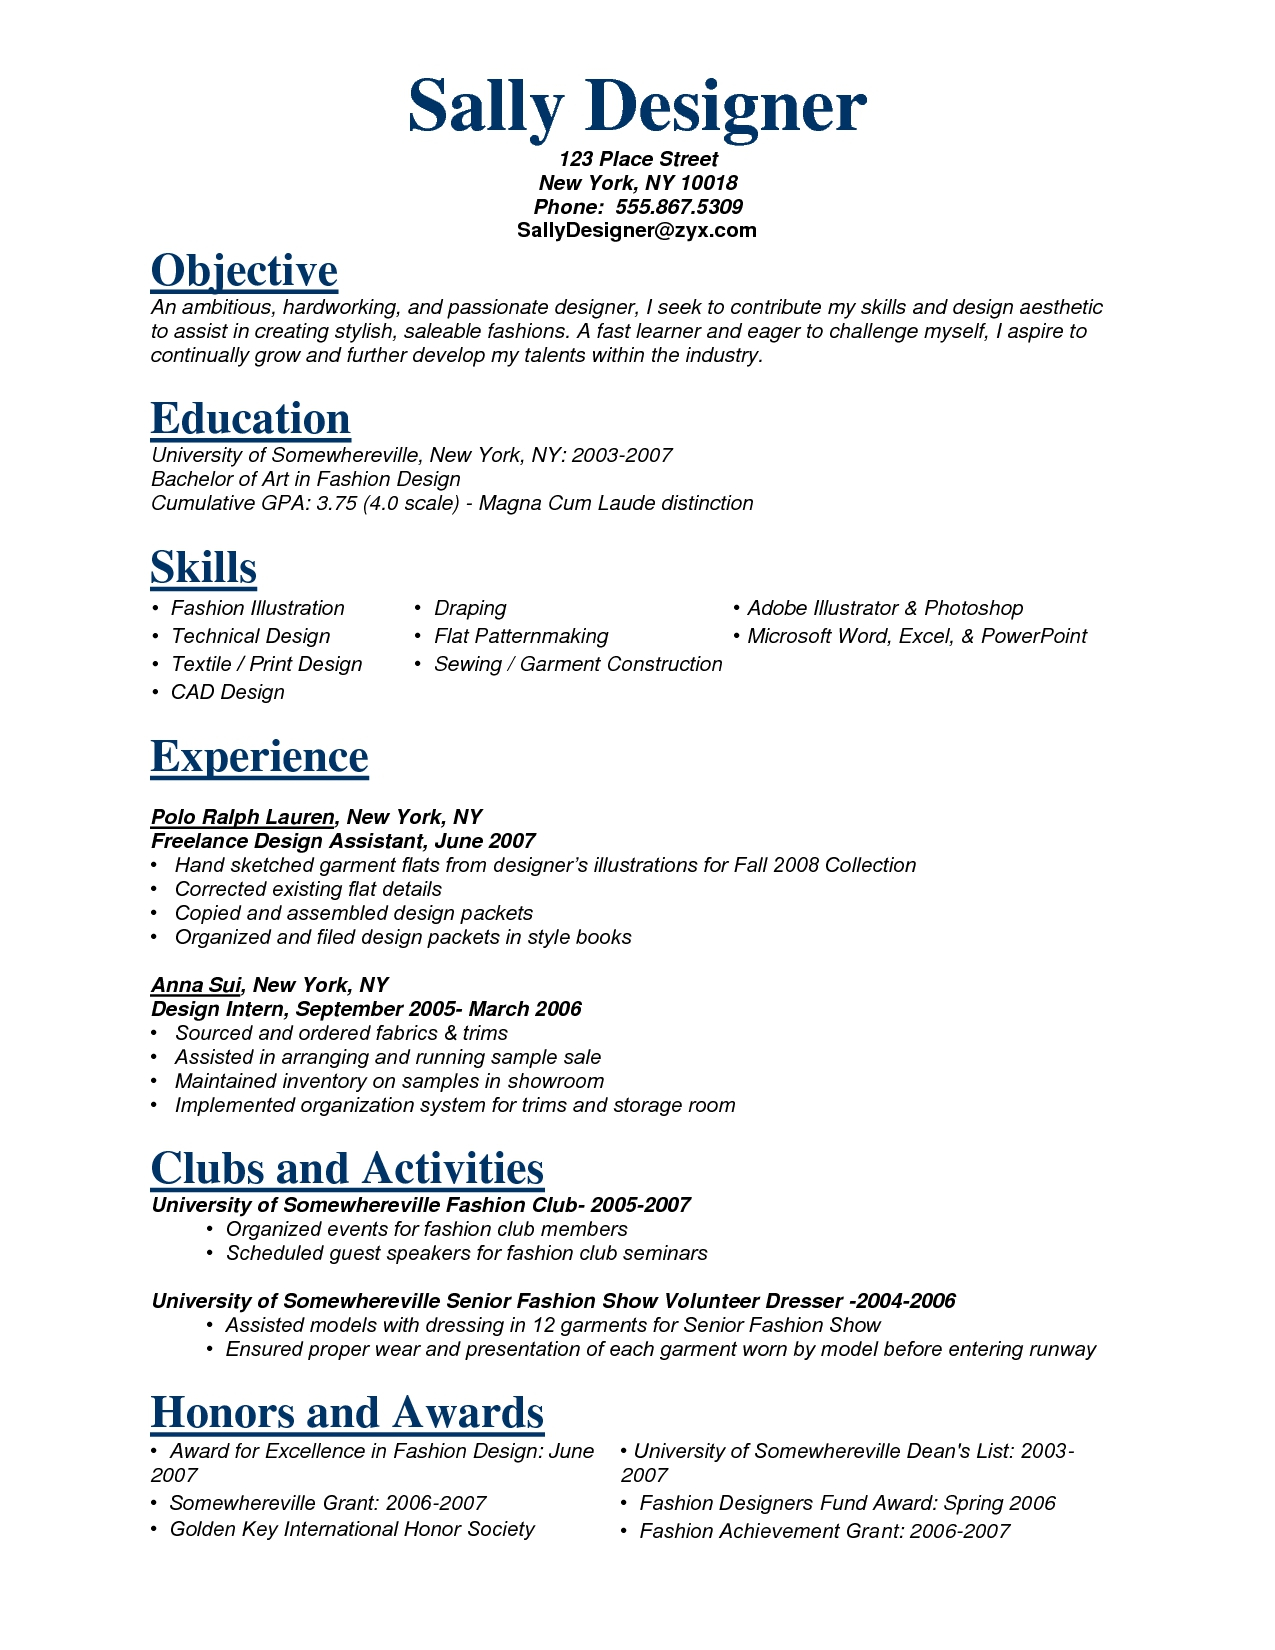 Grant Cover Letter Examples from mthomearts.com